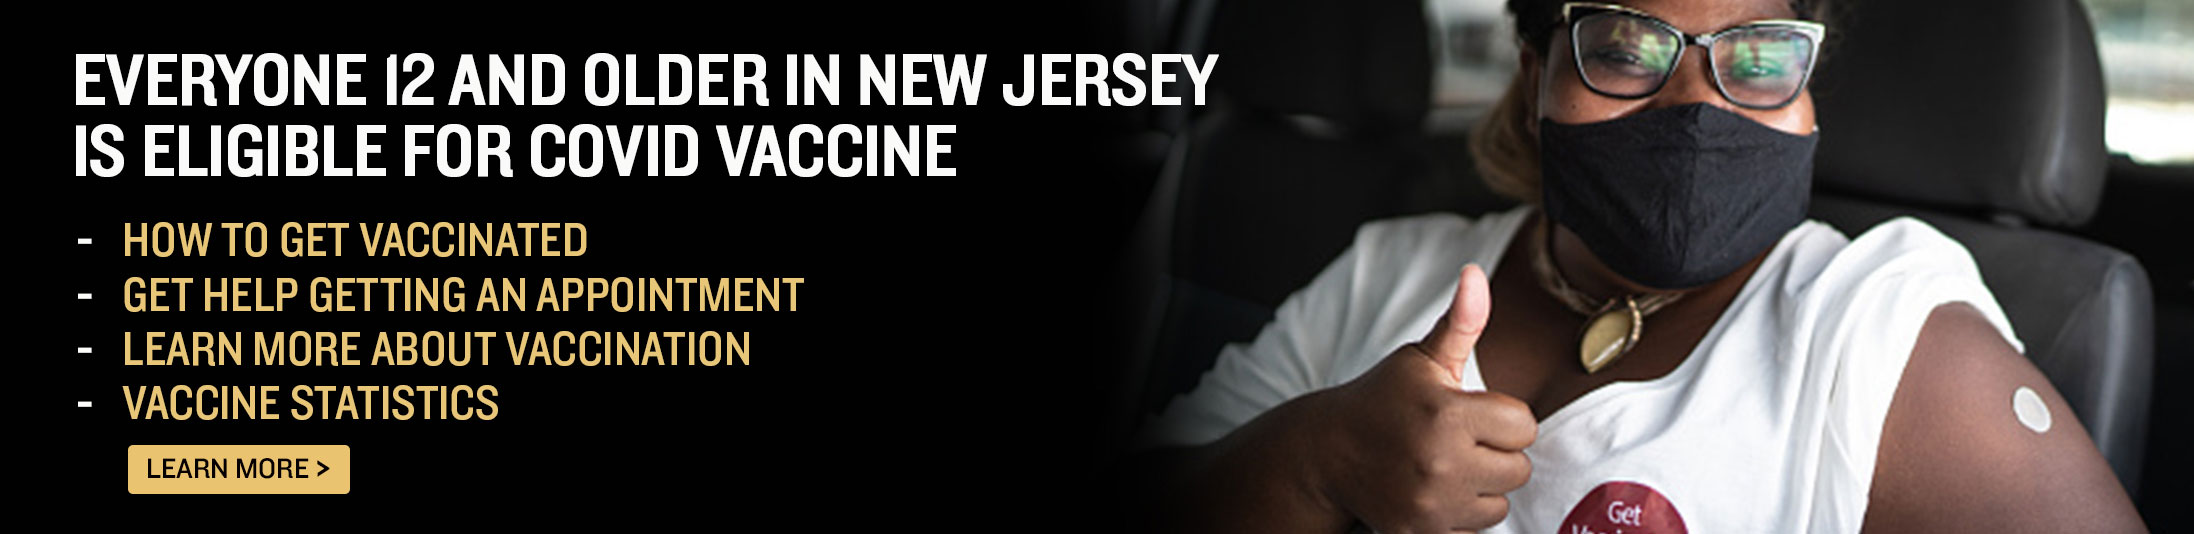 WALK-IN VACCINATIONS ARE OPEN TO ALL NEW JERSEYANS AGE 12+ - Learn More